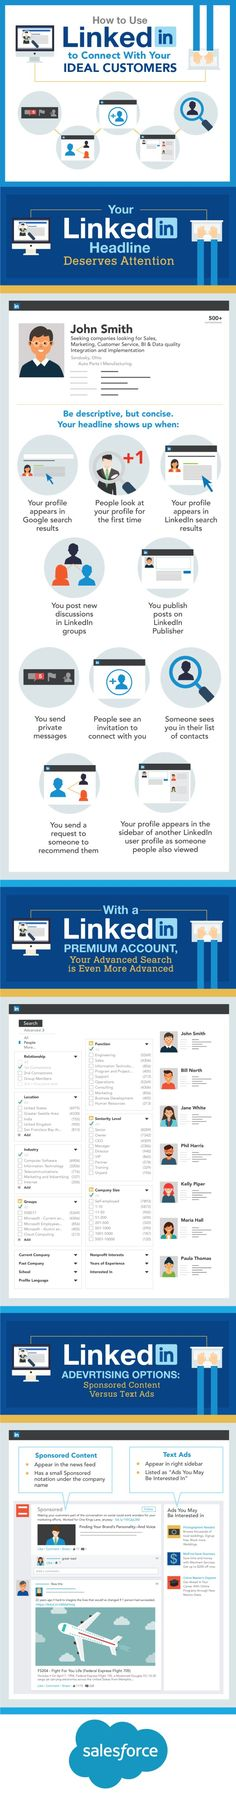 How to find more customers with LinkedIn | Websites 24-7